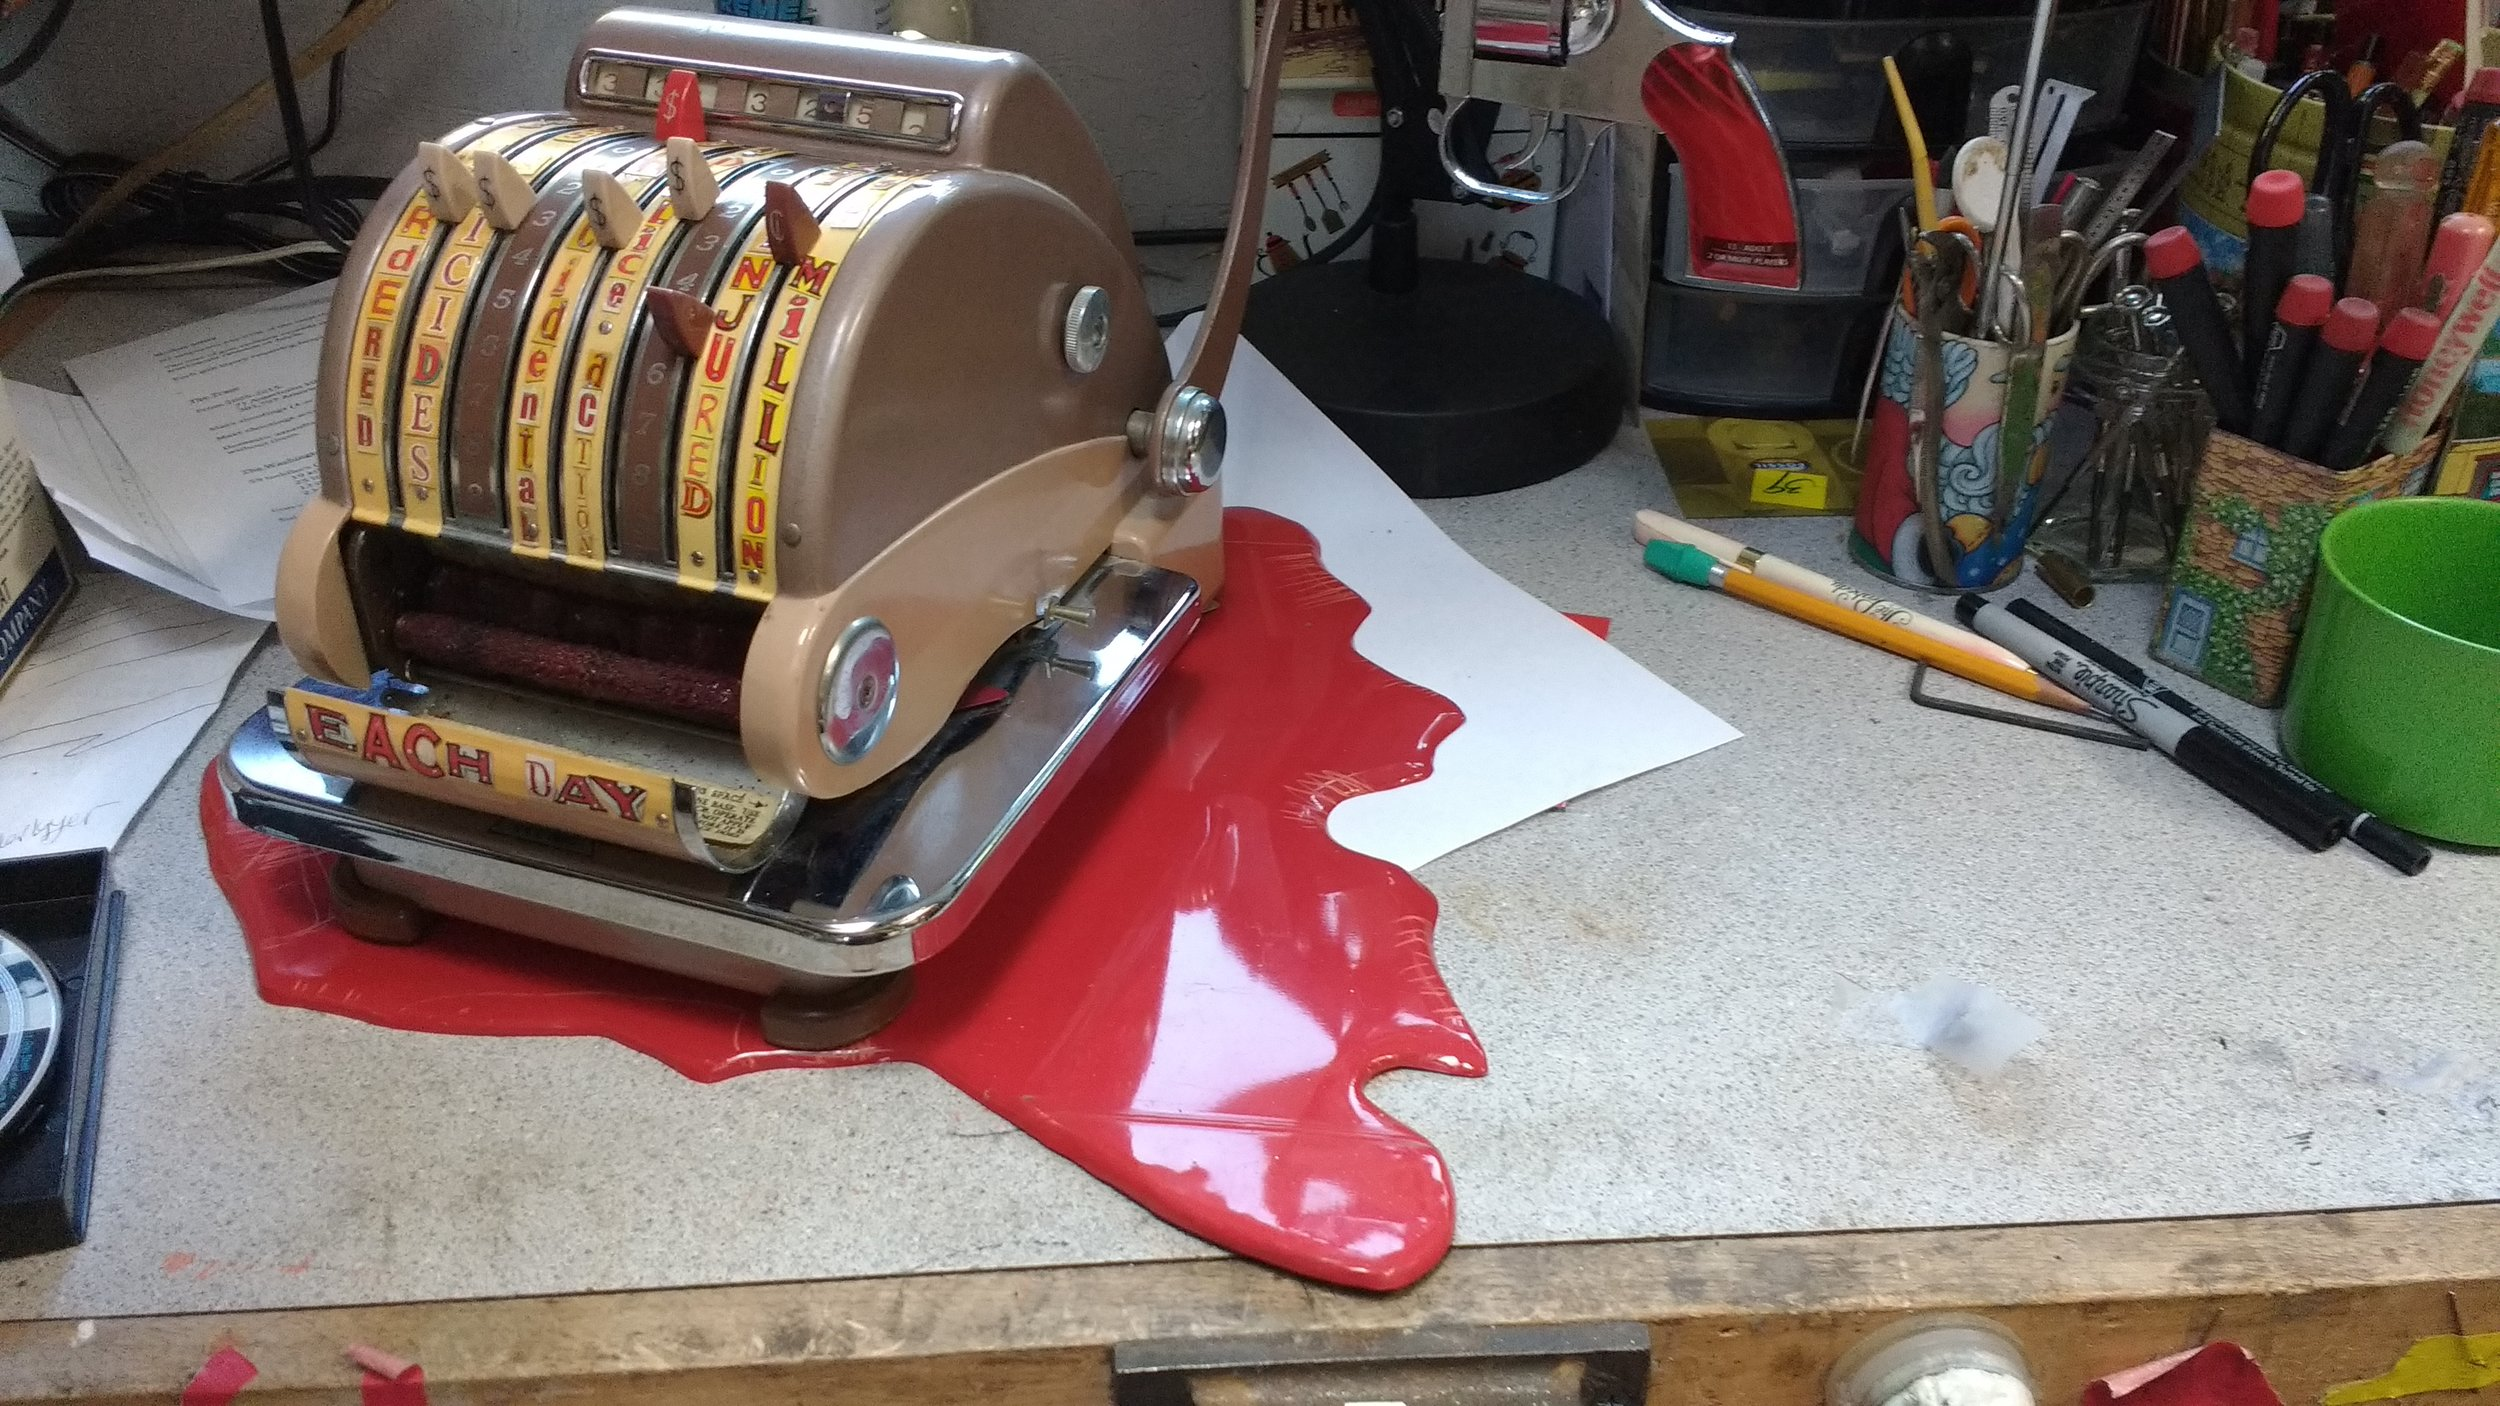 Working in the studio and adjusting the blood platform so it lays flat